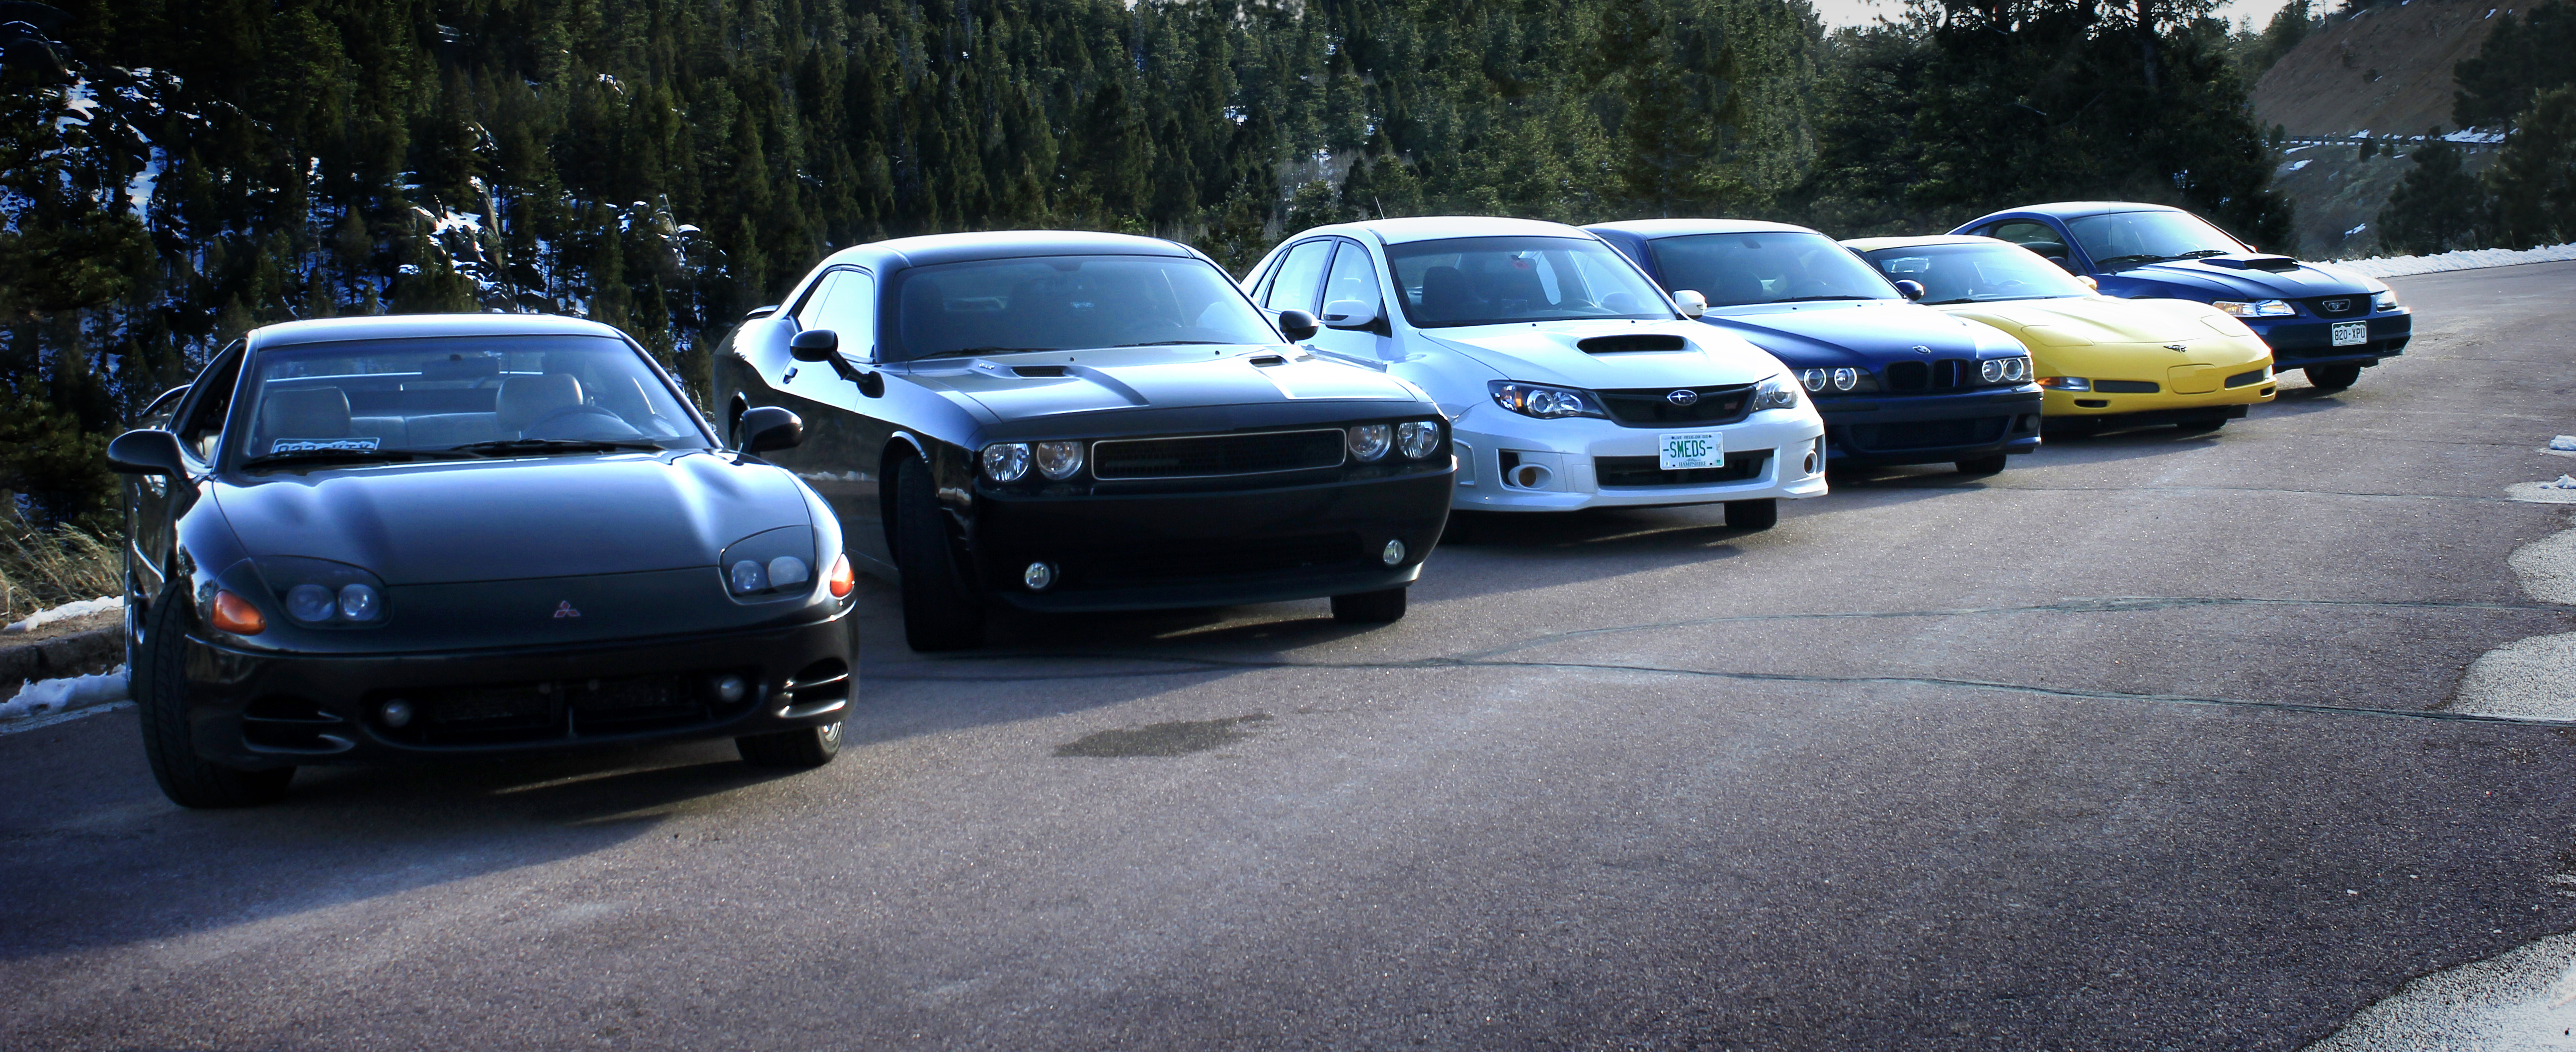 Cruise this saturday, Feb 16th!-2_18_12_3.jpg